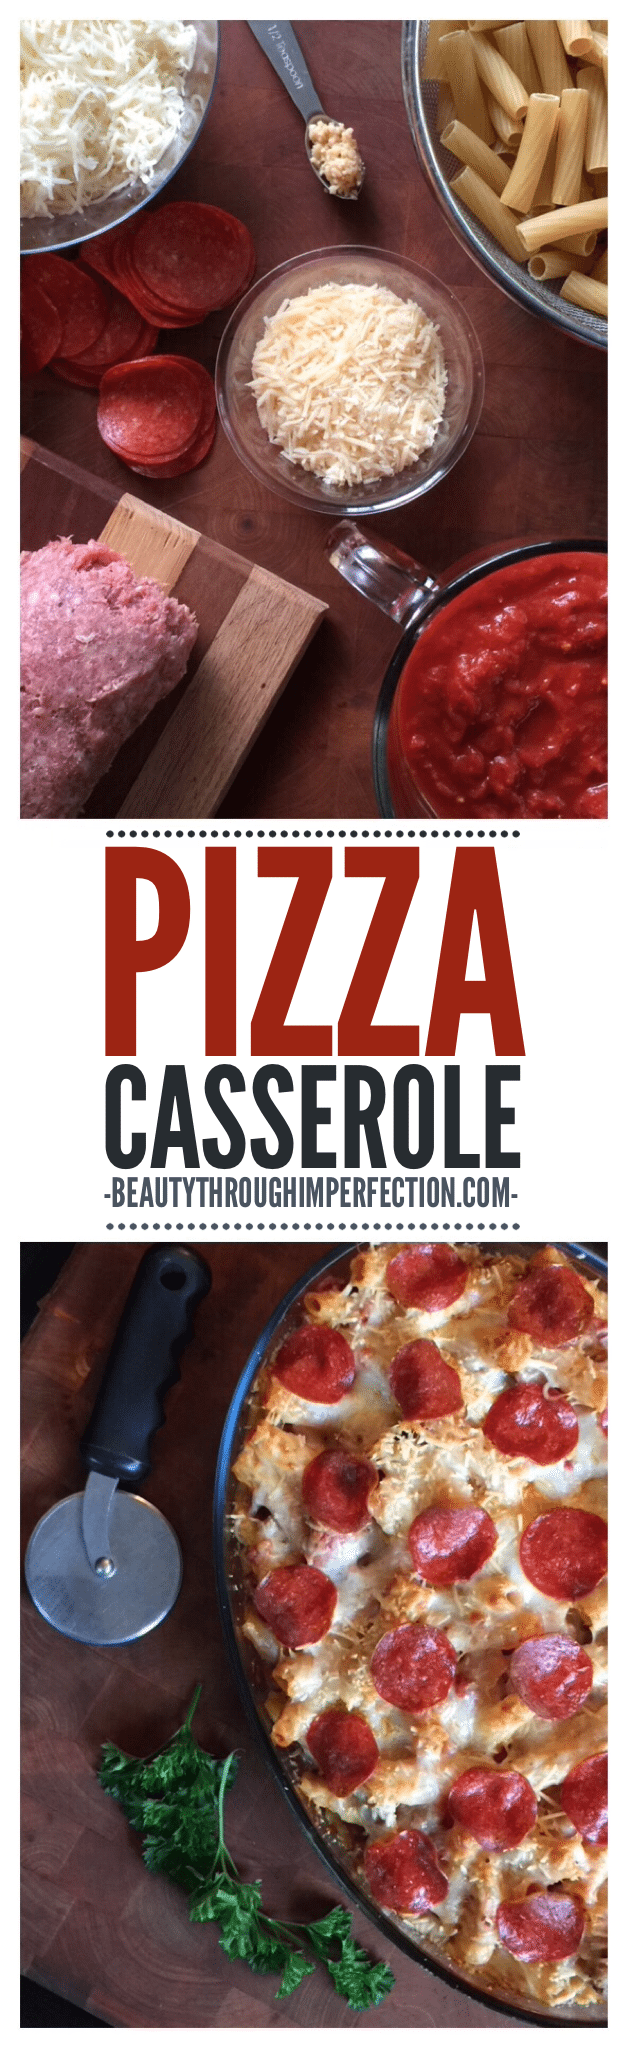 That looks so good and so does such a simple recipe!  Easy dinner pizza casserole